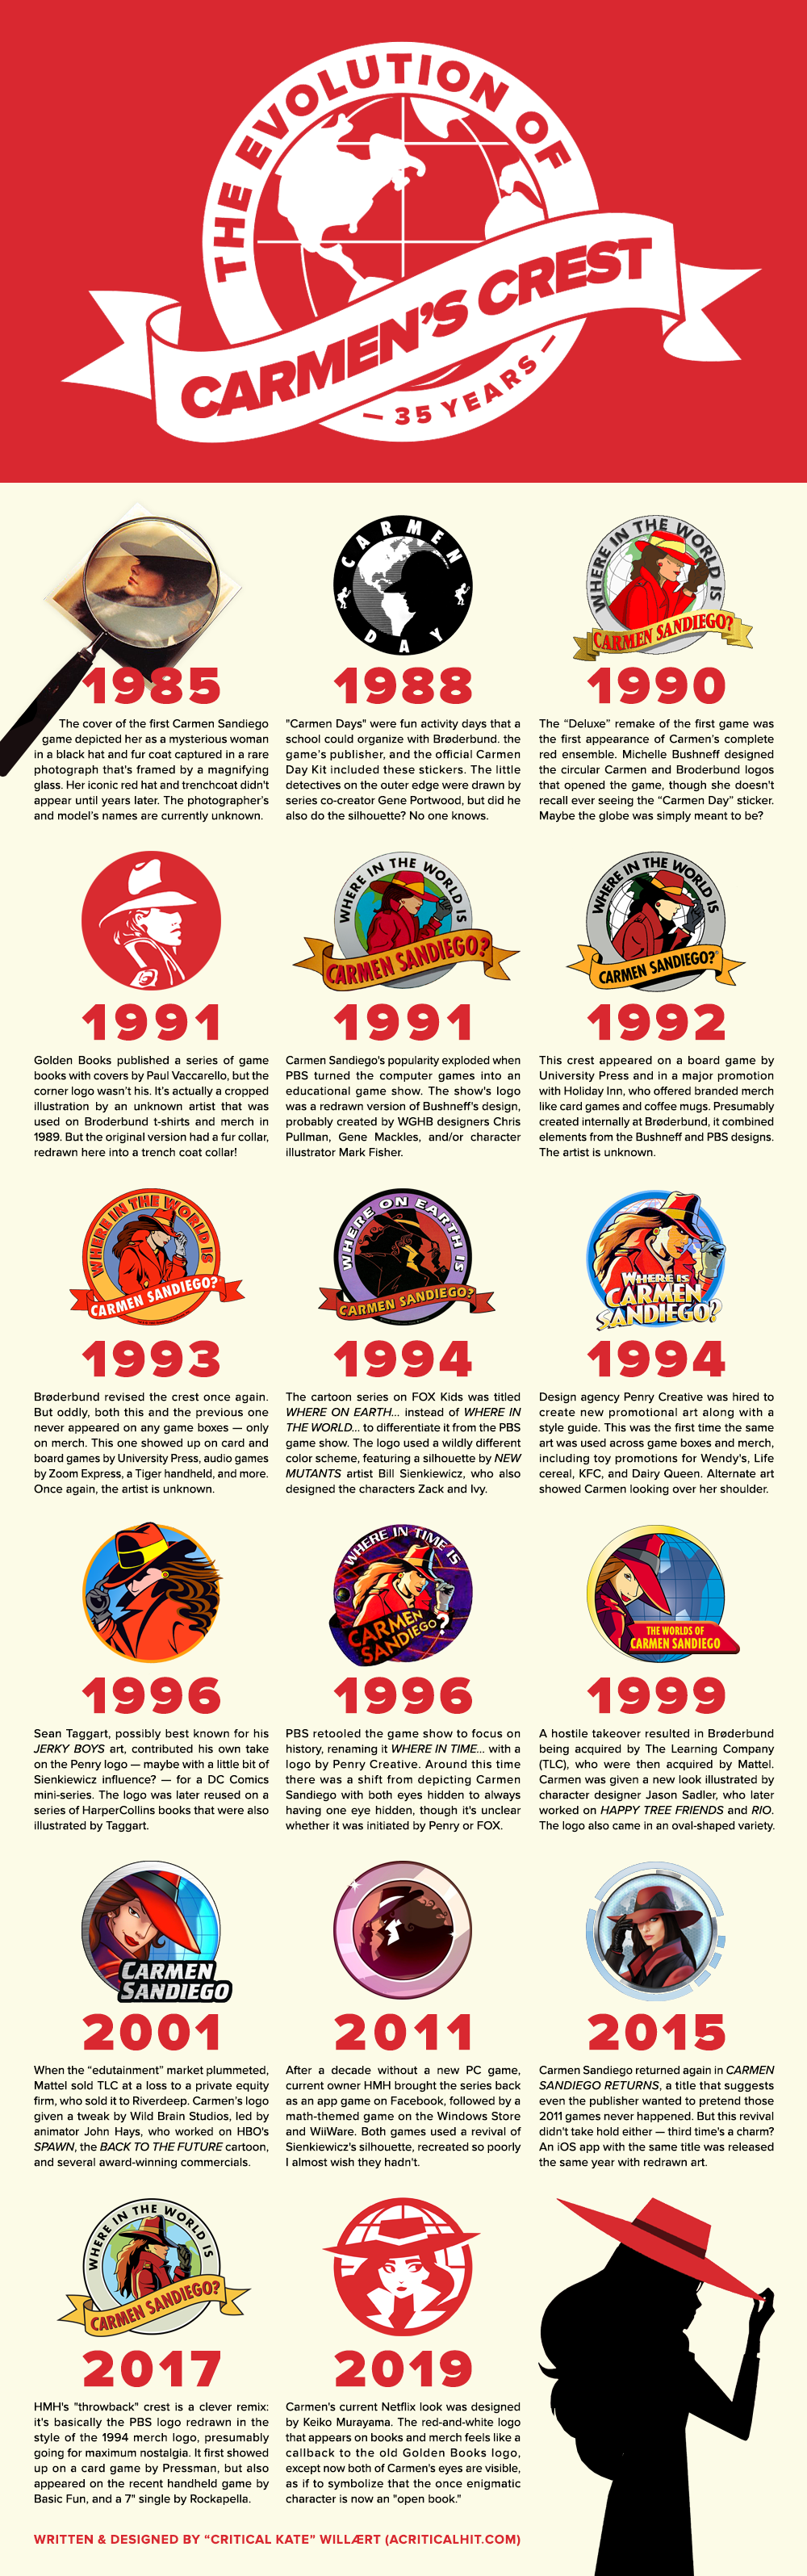 A visual evolution of Carmen Sandiego's logo from 1985 to today.